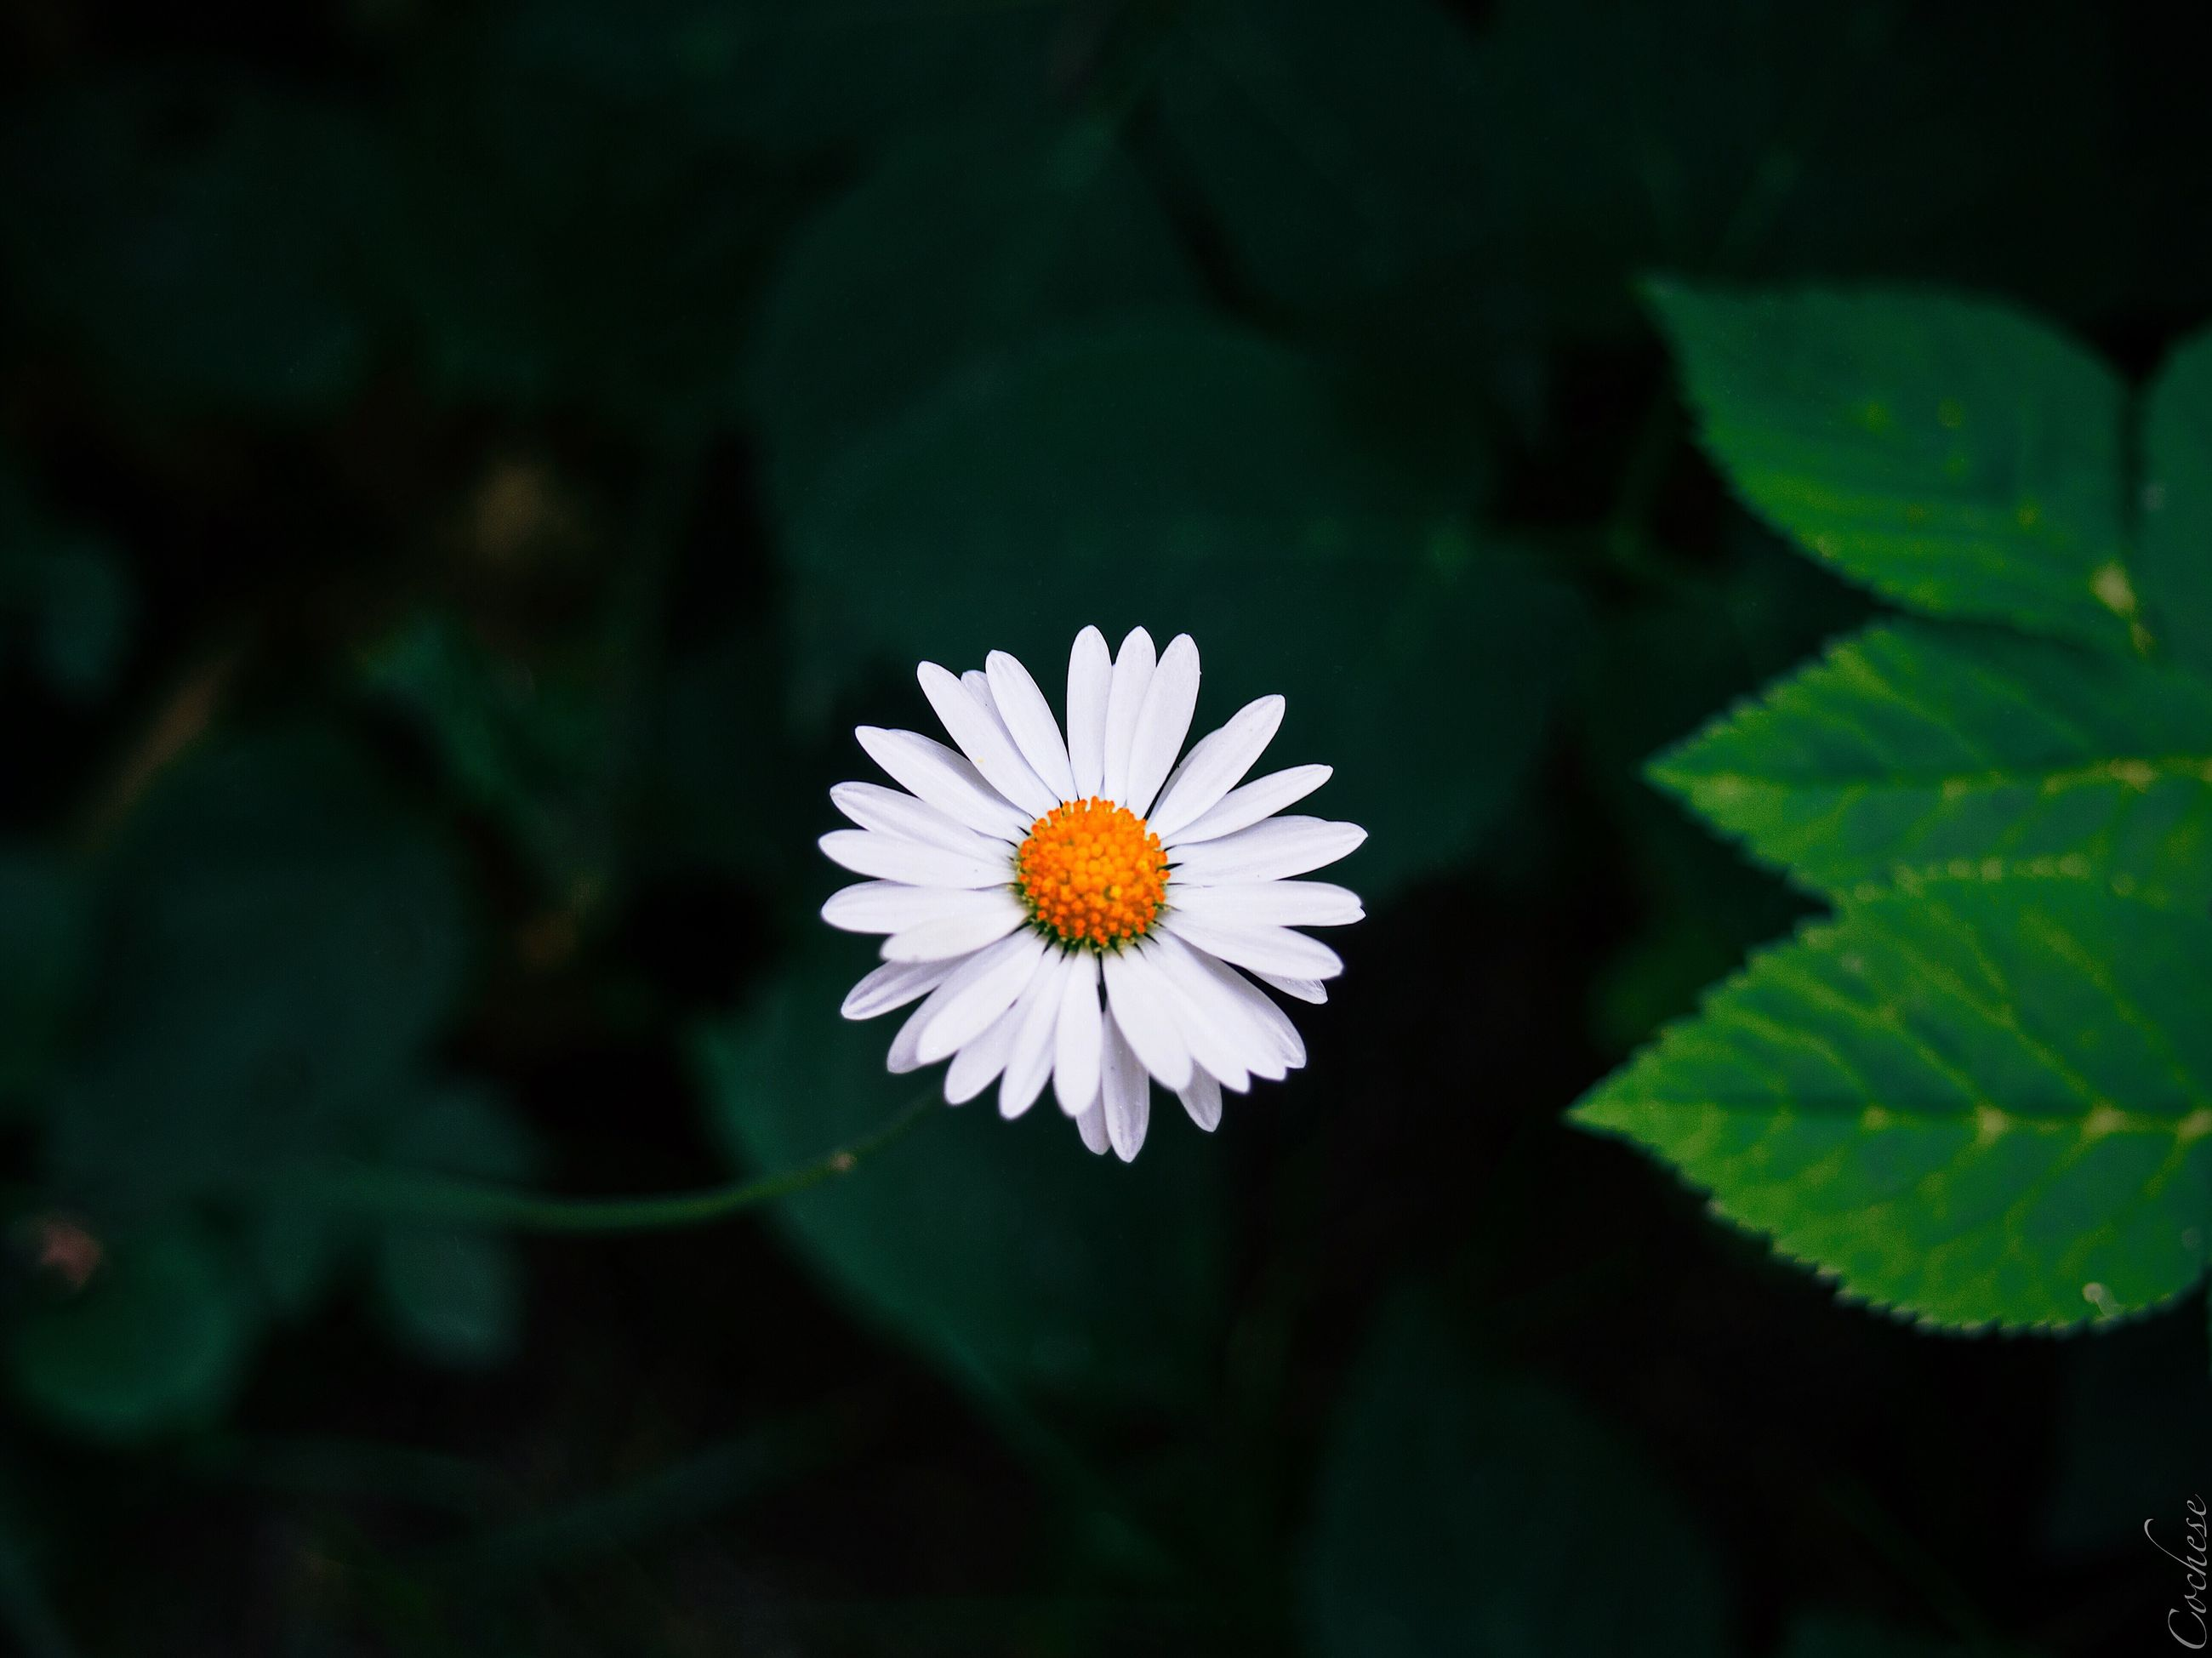 flower, flowering plant, plant, freshness, growth, beauty in nature, petal, fragility, vulnerability, flower head, close-up, inflorescence, focus on foreground, leaf, plant part, nature, white color, day, daisy, pollen, no people